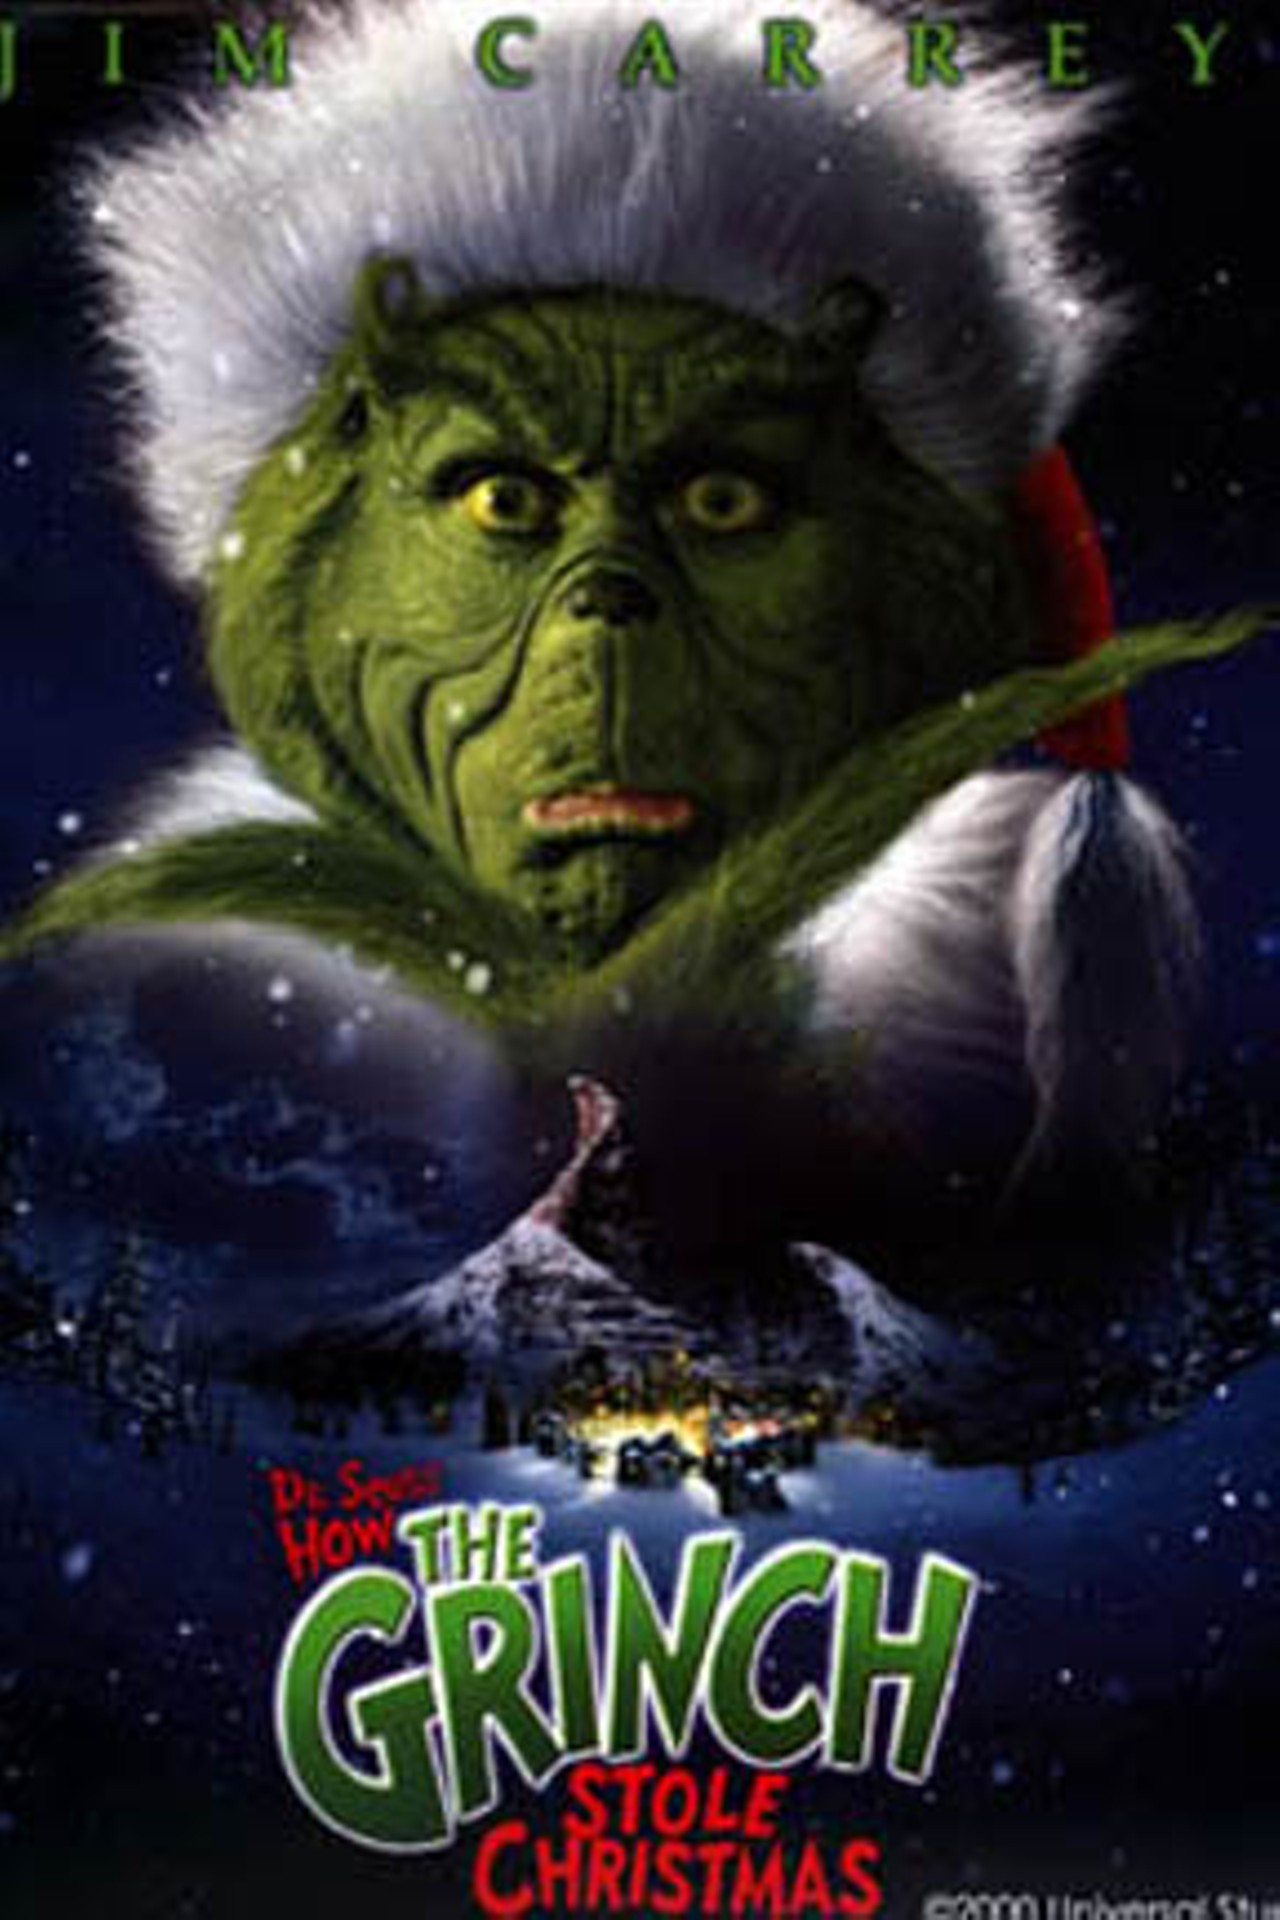 how the grinch stole christmas tucson weekly - The Grinch Stole Christmas Full Movie